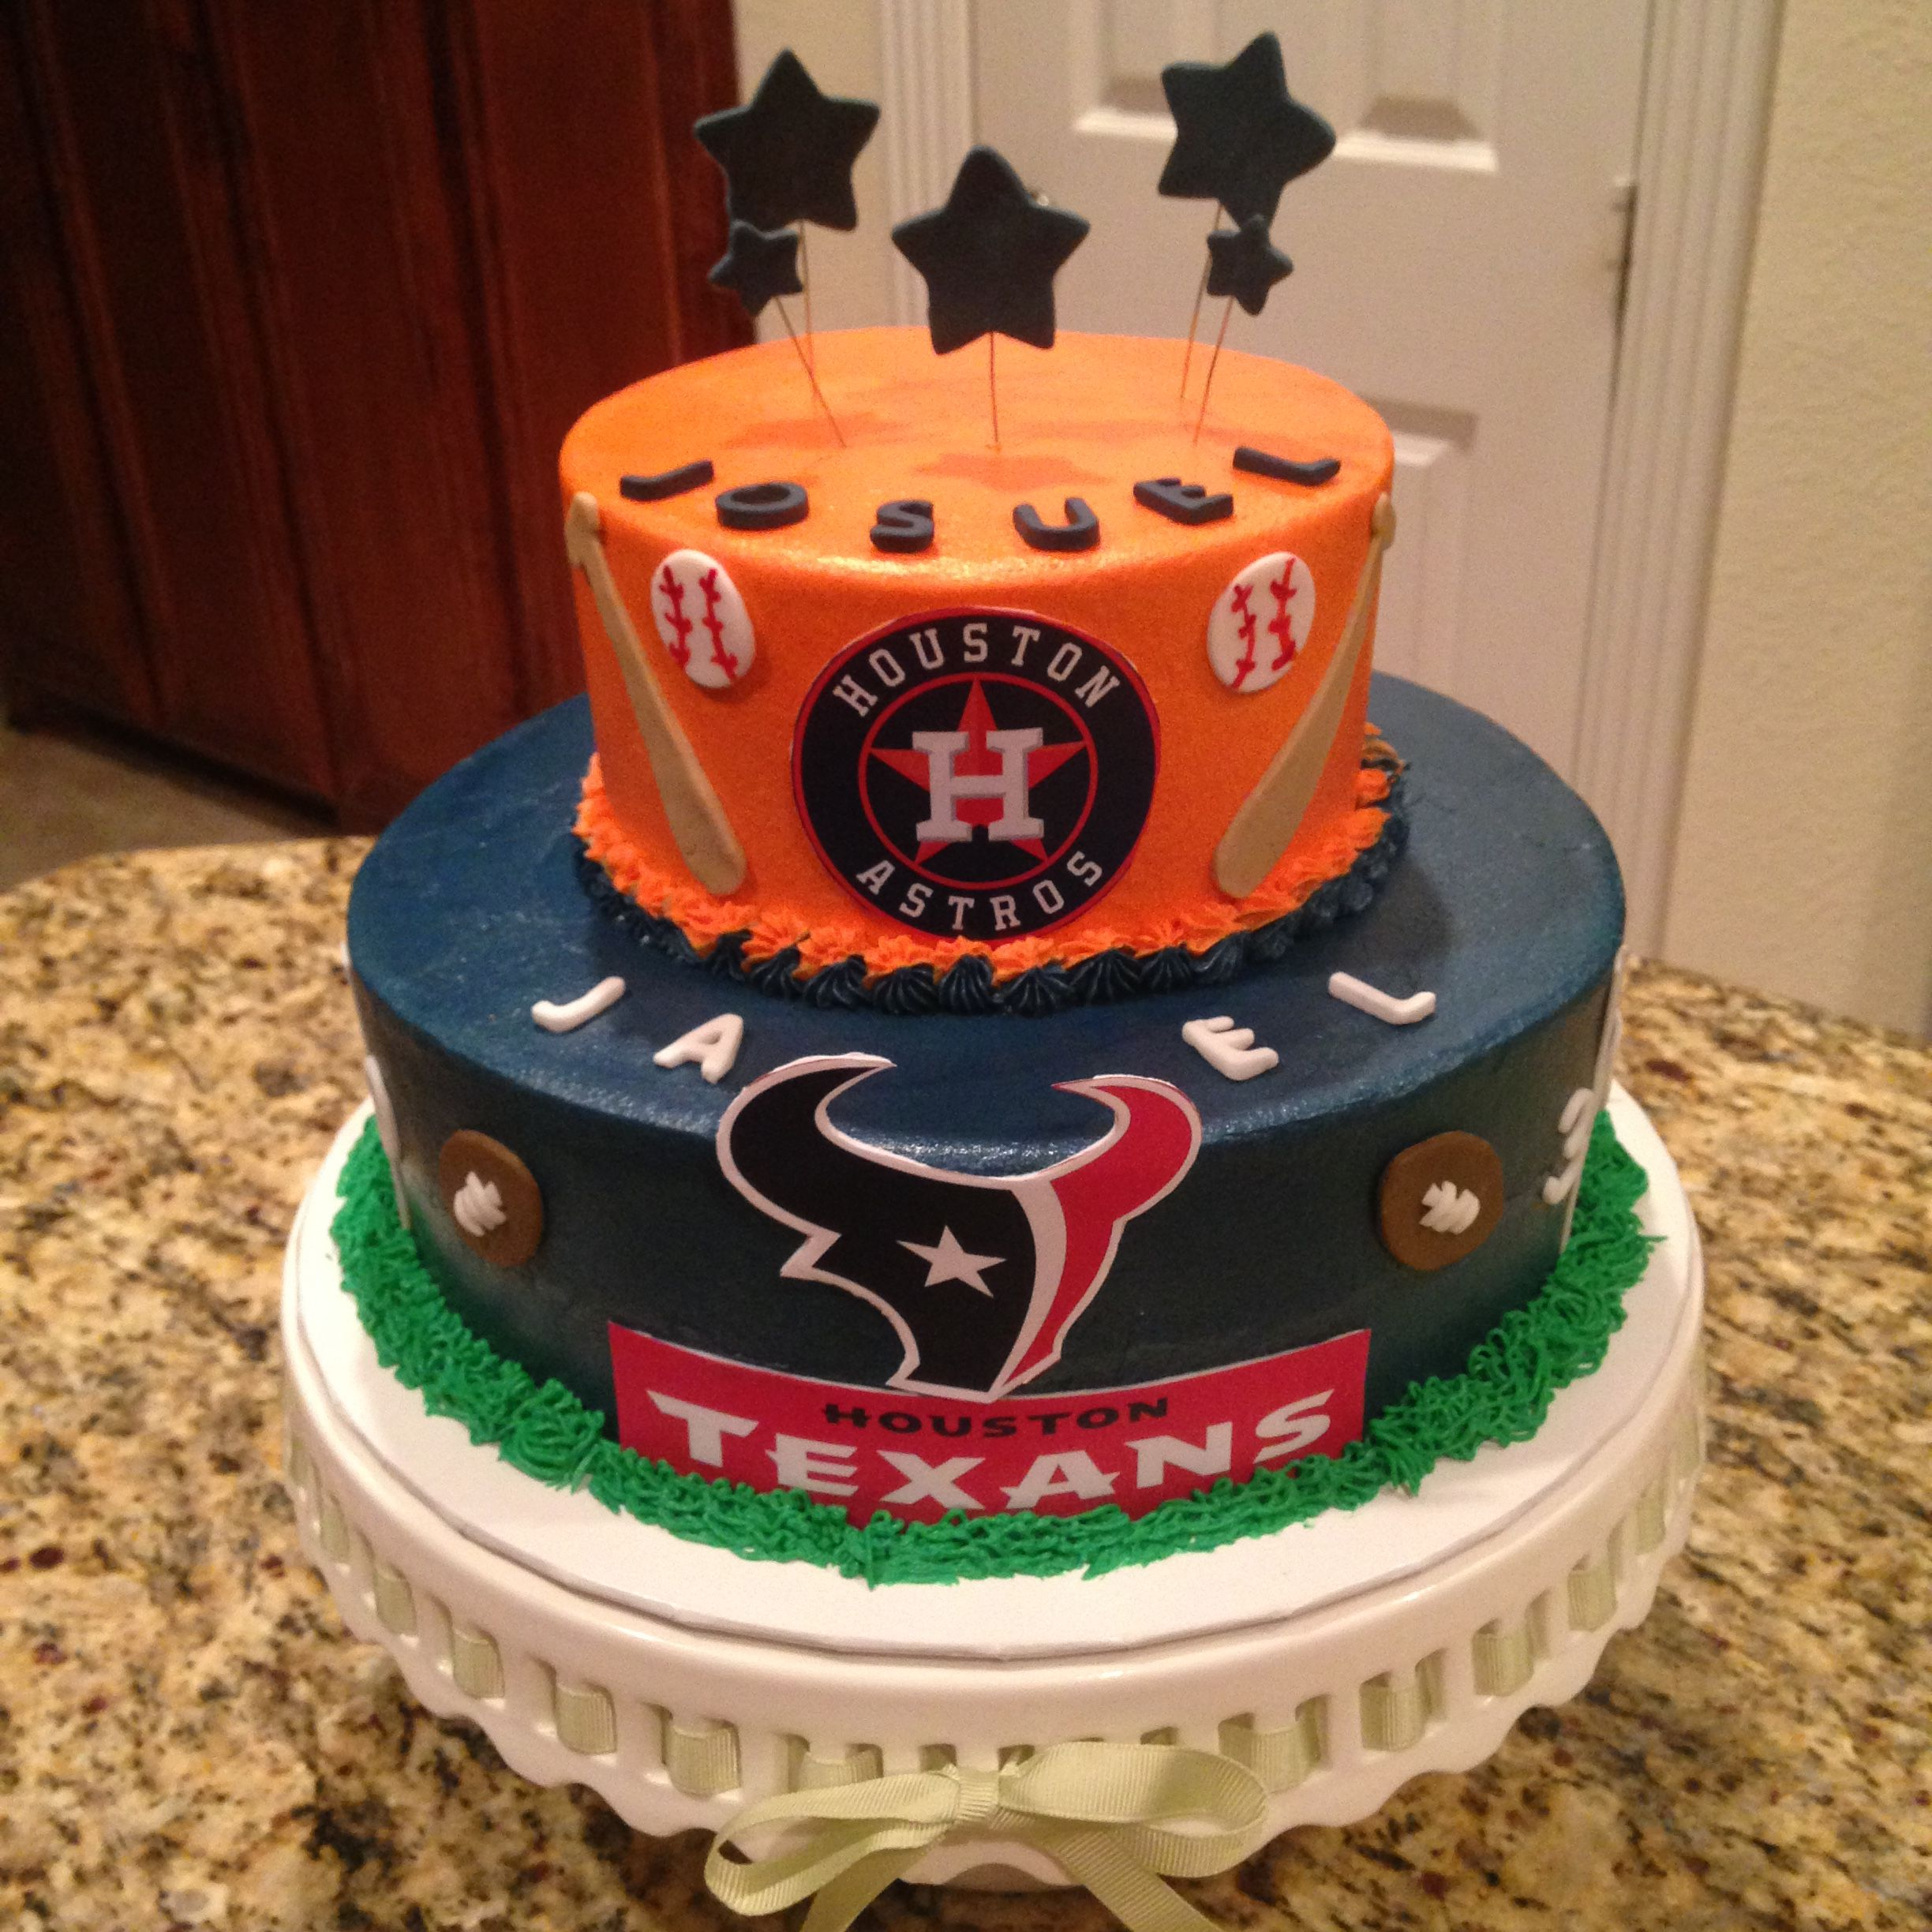 Phenomenal Houston Astros And Texans Cake S Facebook Com Birthday Cards Printable Giouspongecafe Filternl